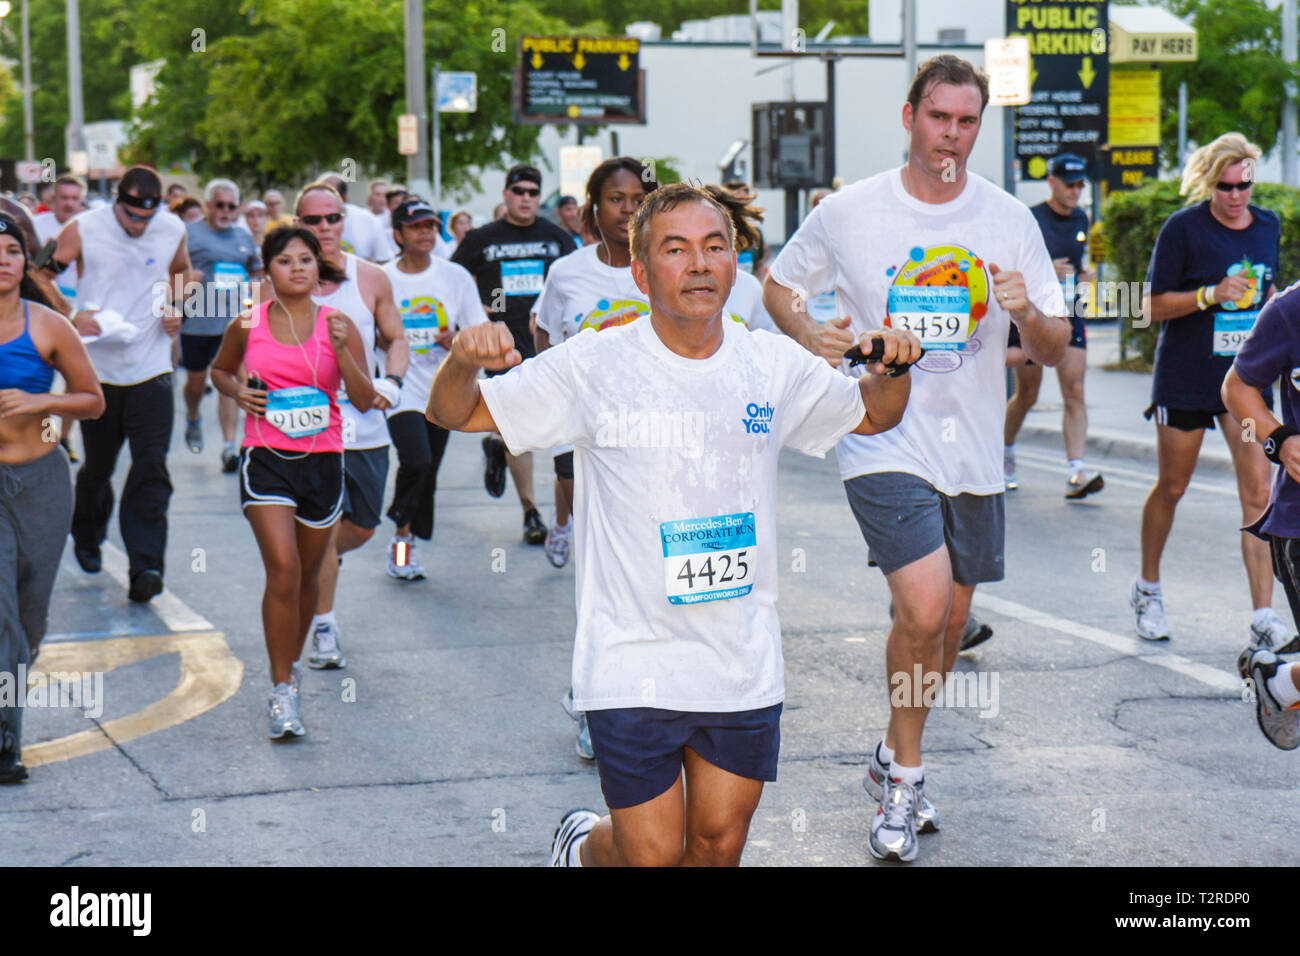 Miami Florida Bayfront Park Mercedes-Benz Miami Corporate Run community charity event runners coworkers co-workers man woman swe - Stock Image